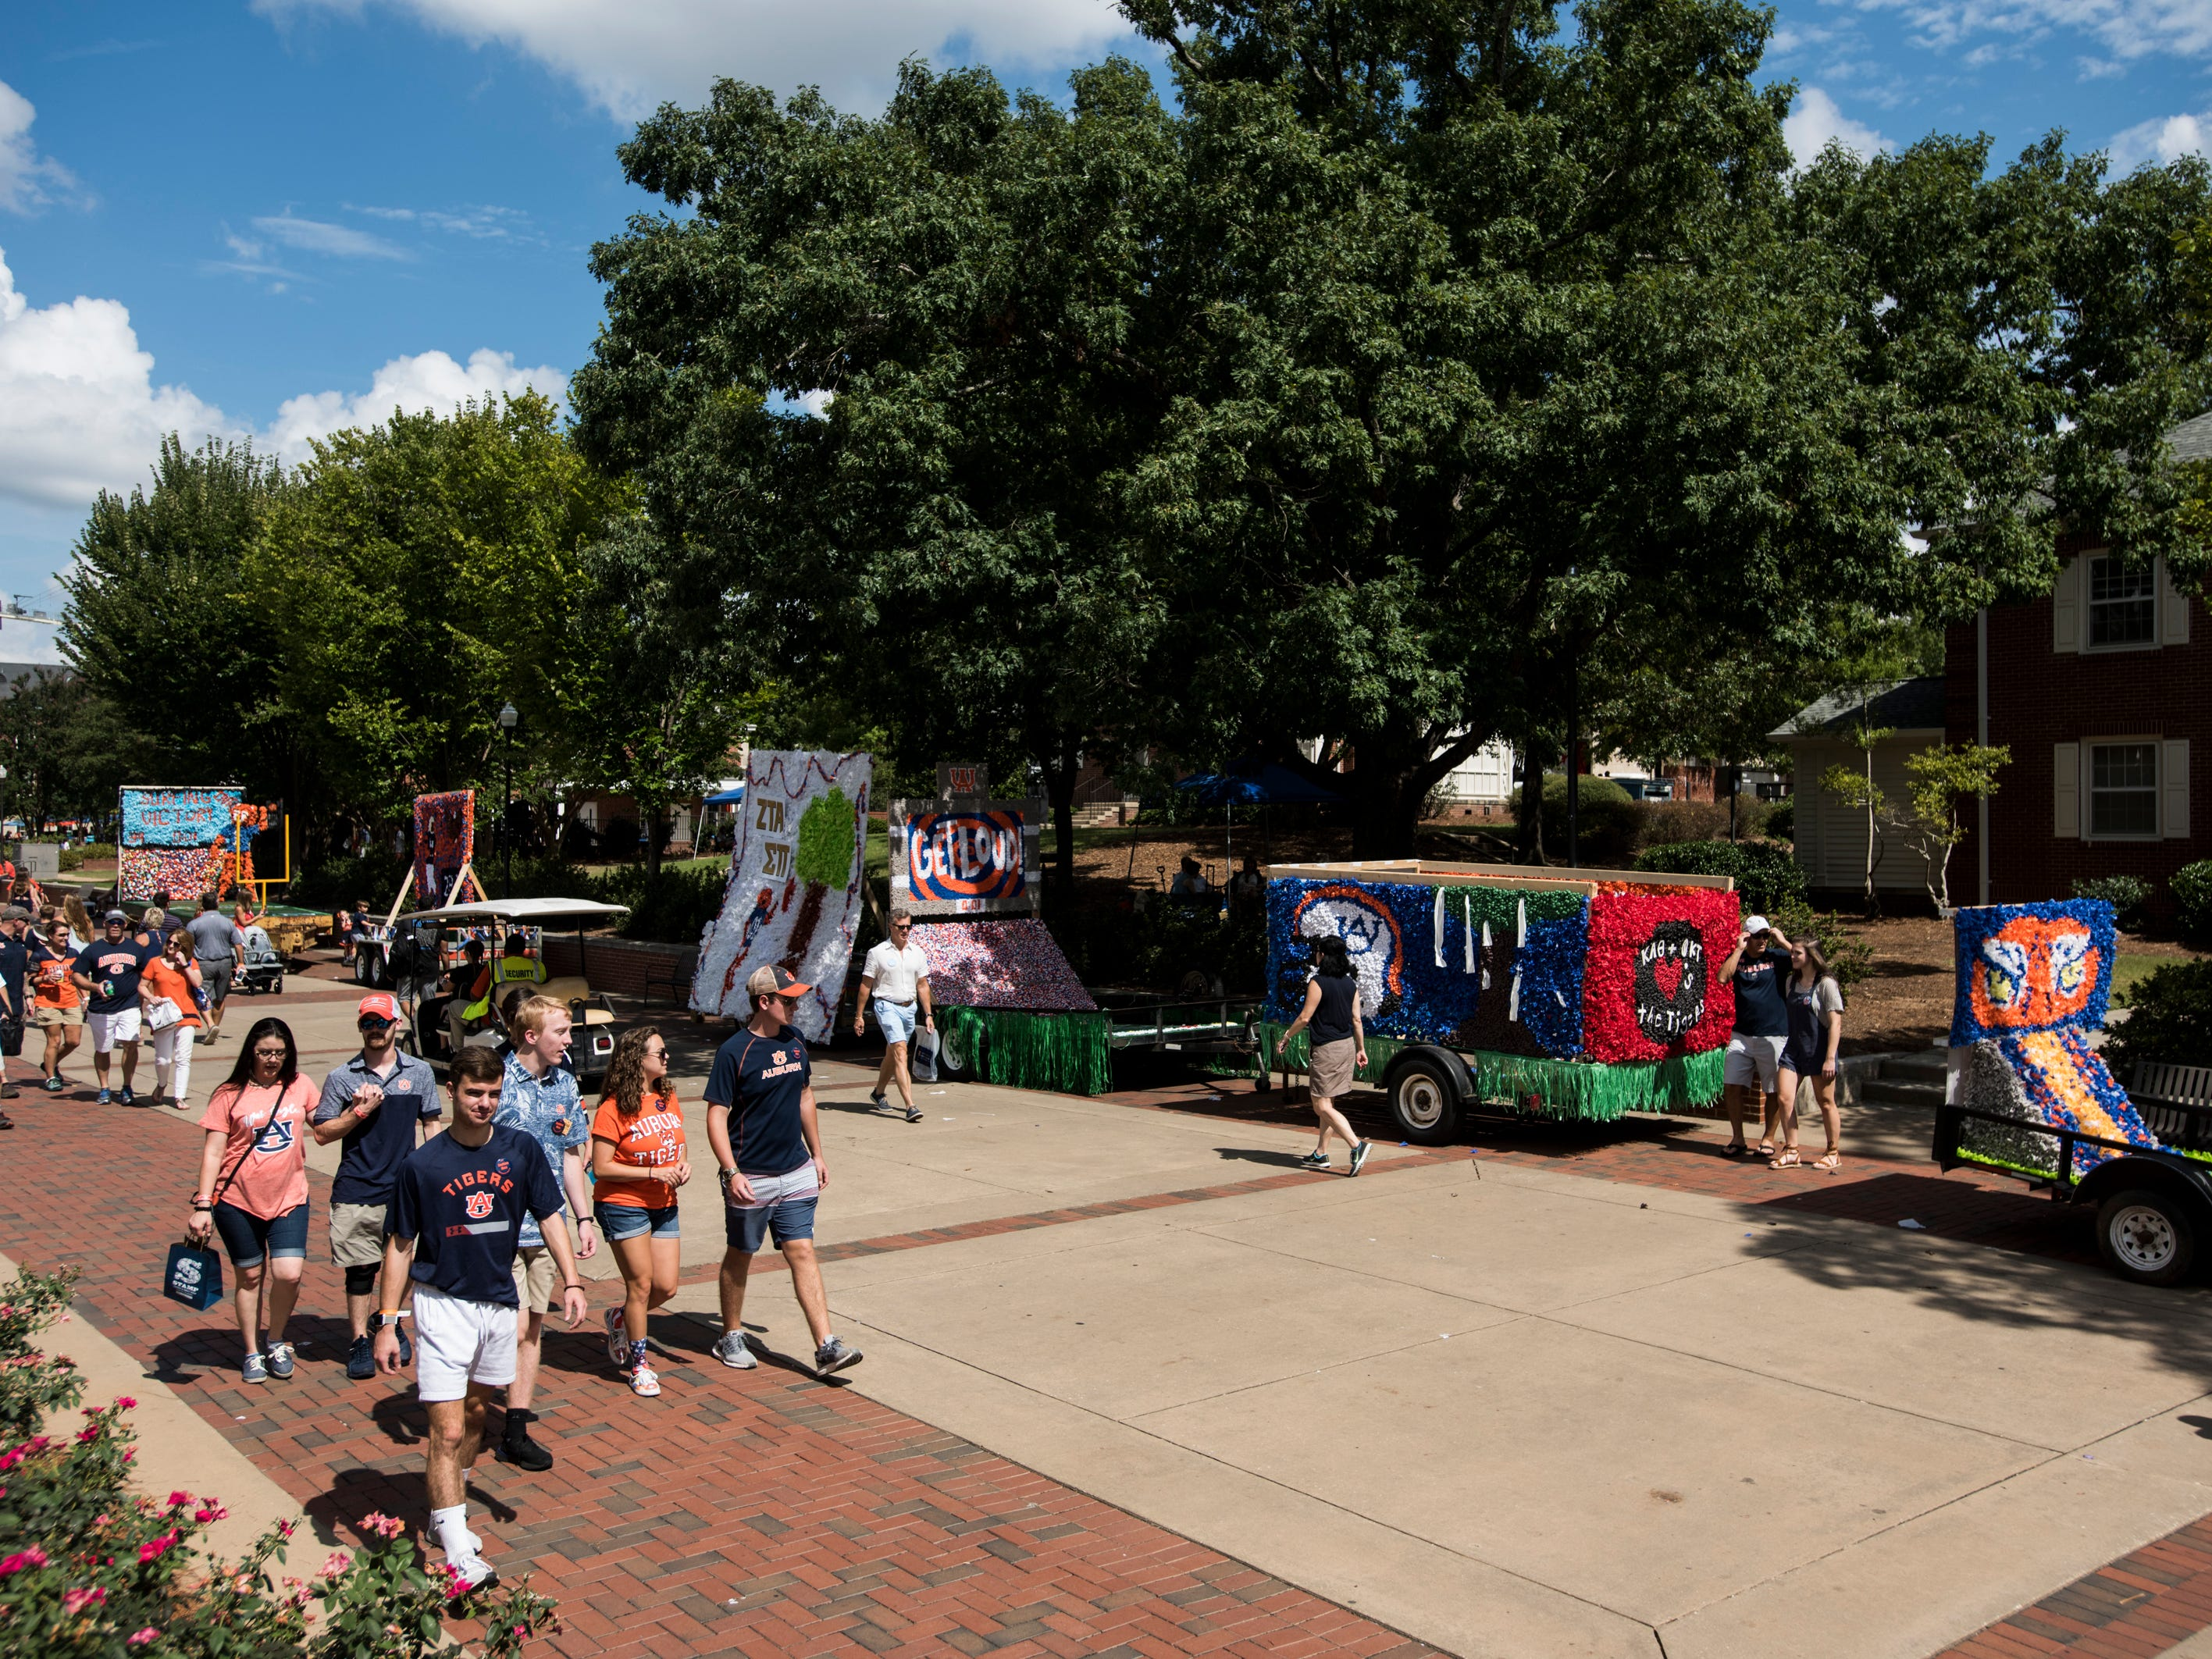 Fans walk by homecoming floats lined up on campus outside Jordan-Hare Stadium in Auburn, Ala., on Saturday, Sept. 29, 2018.